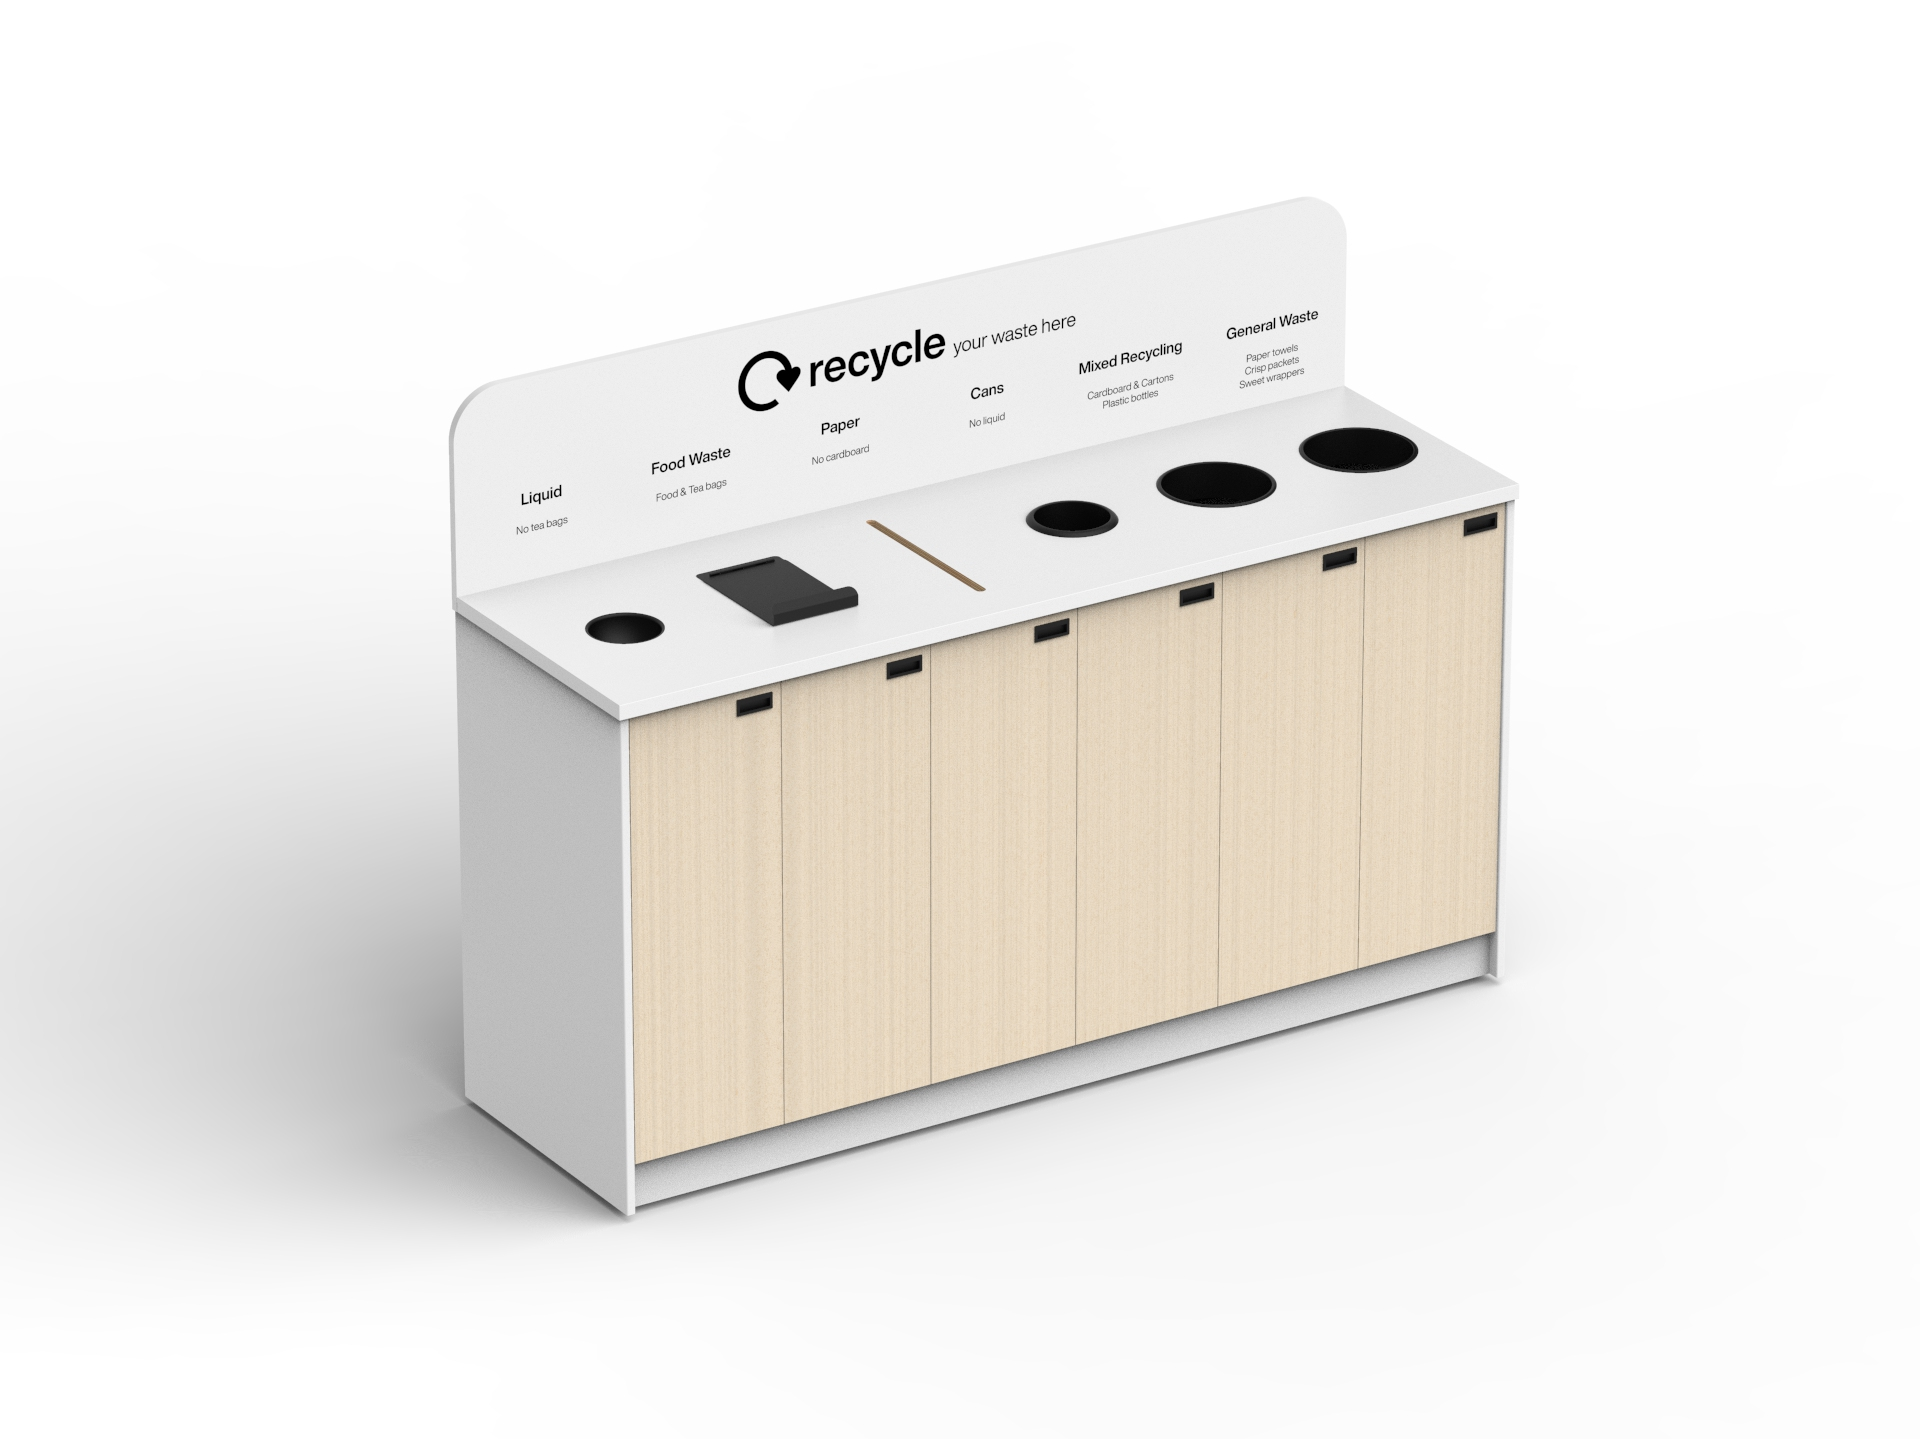 bespoke recycling station for confidential waste with secure lock